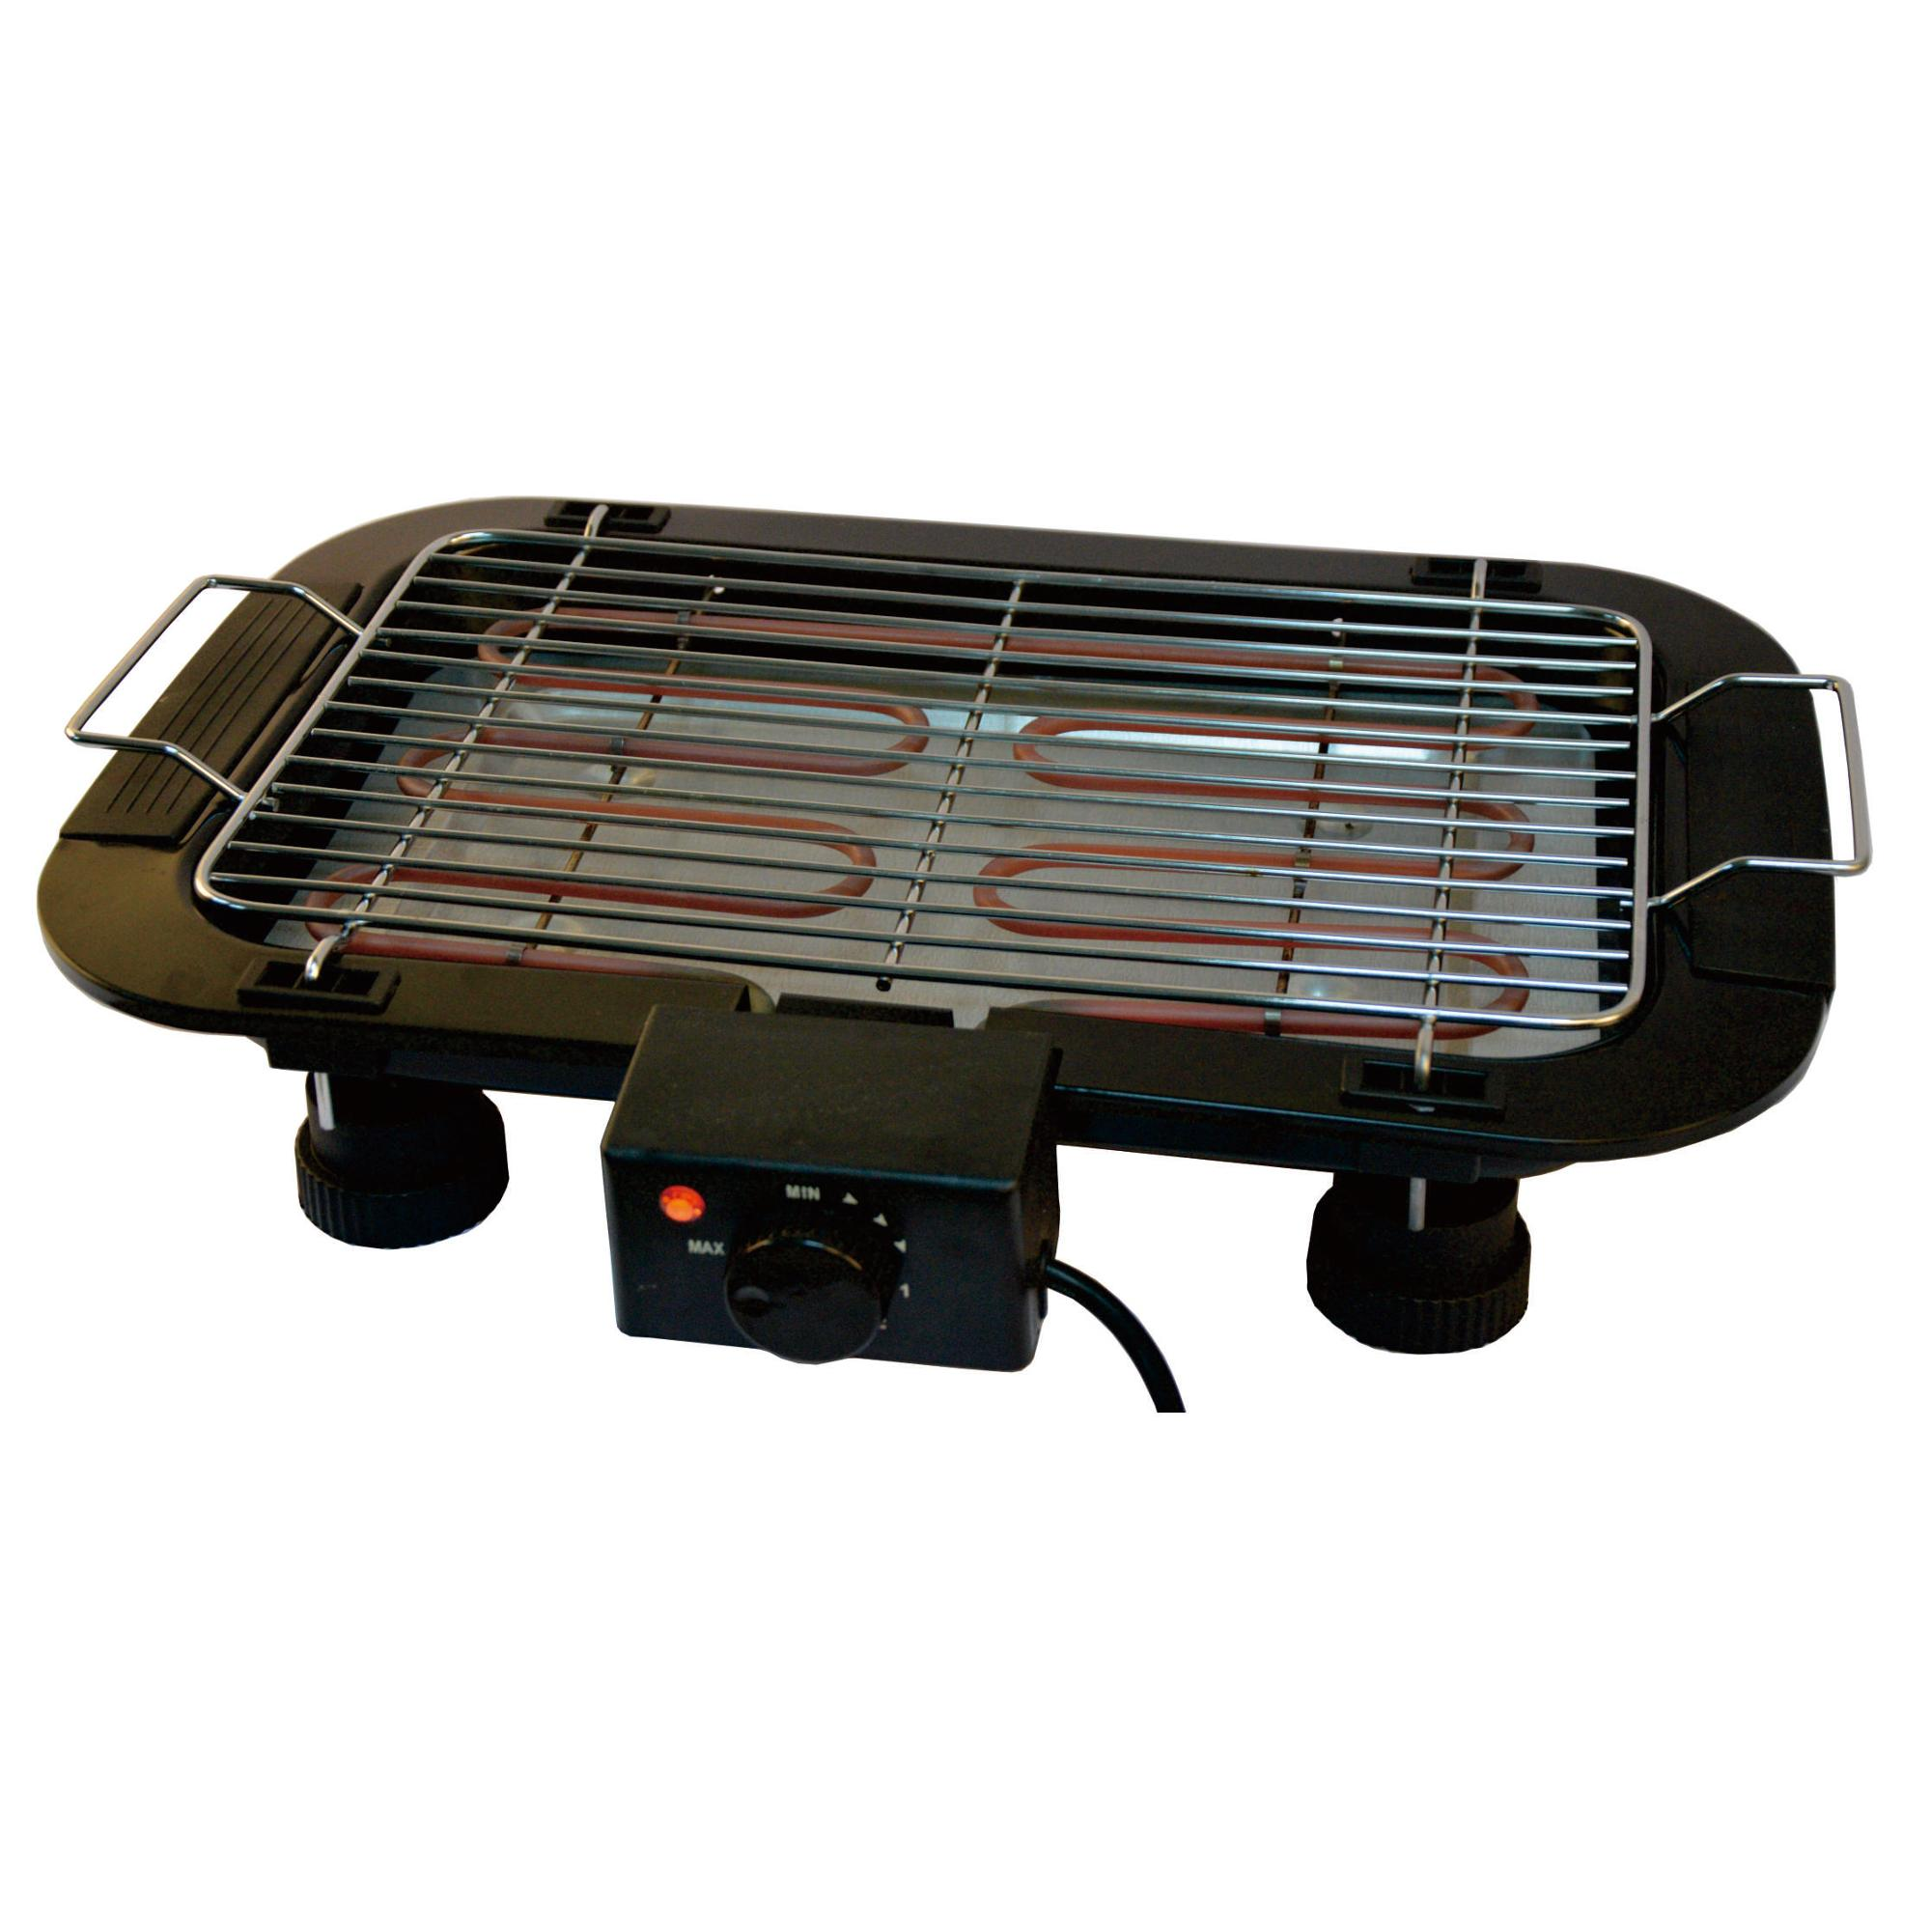 Electric Barbecue Grill Indoor Tabletop Thermostat Grill Height Adjustable Electric BBQ Grill